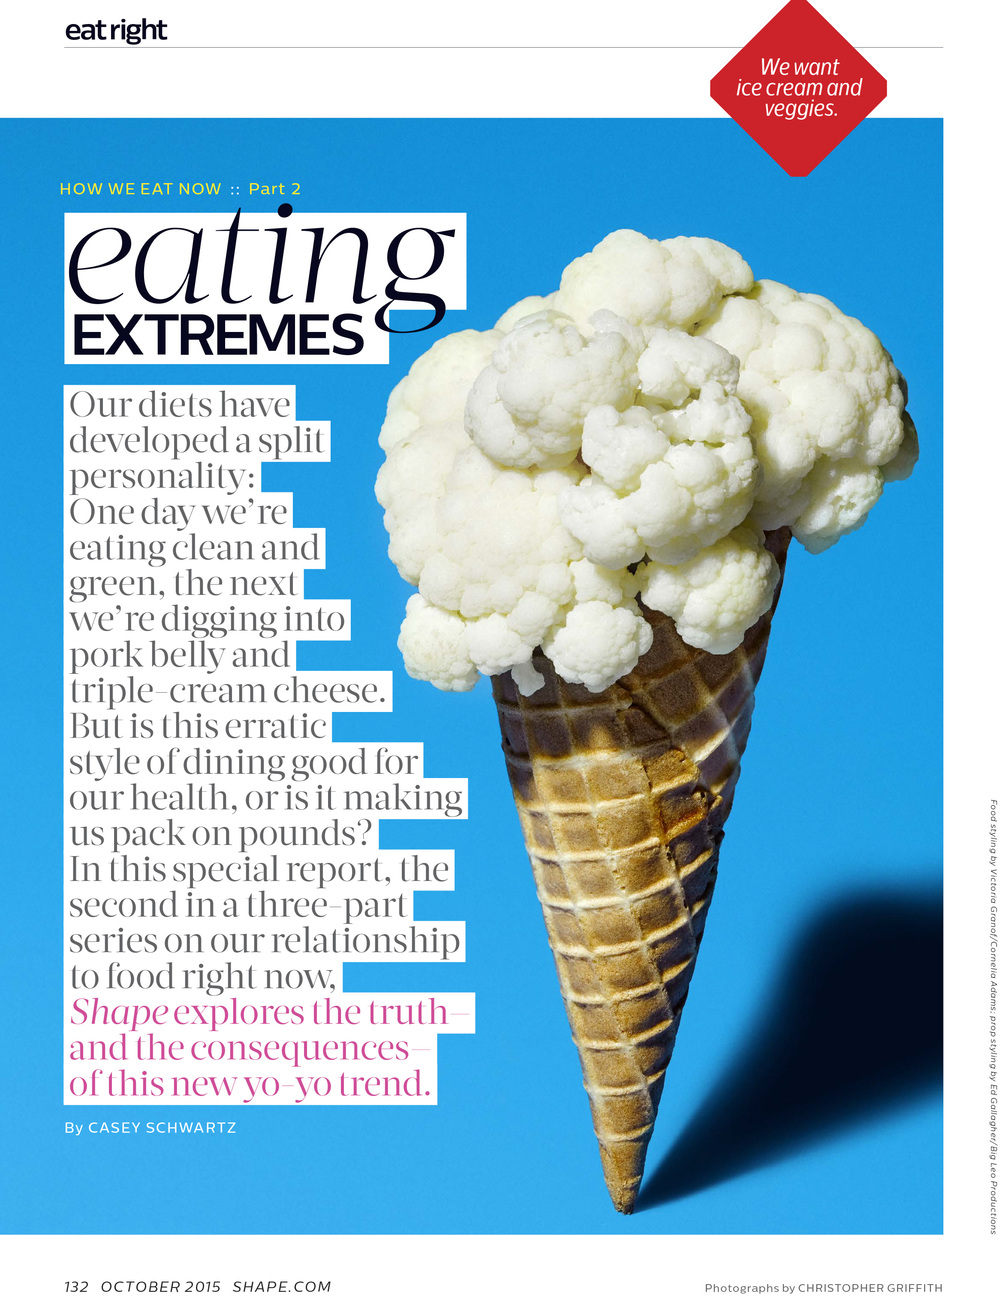 Eating Extremes, October 2015